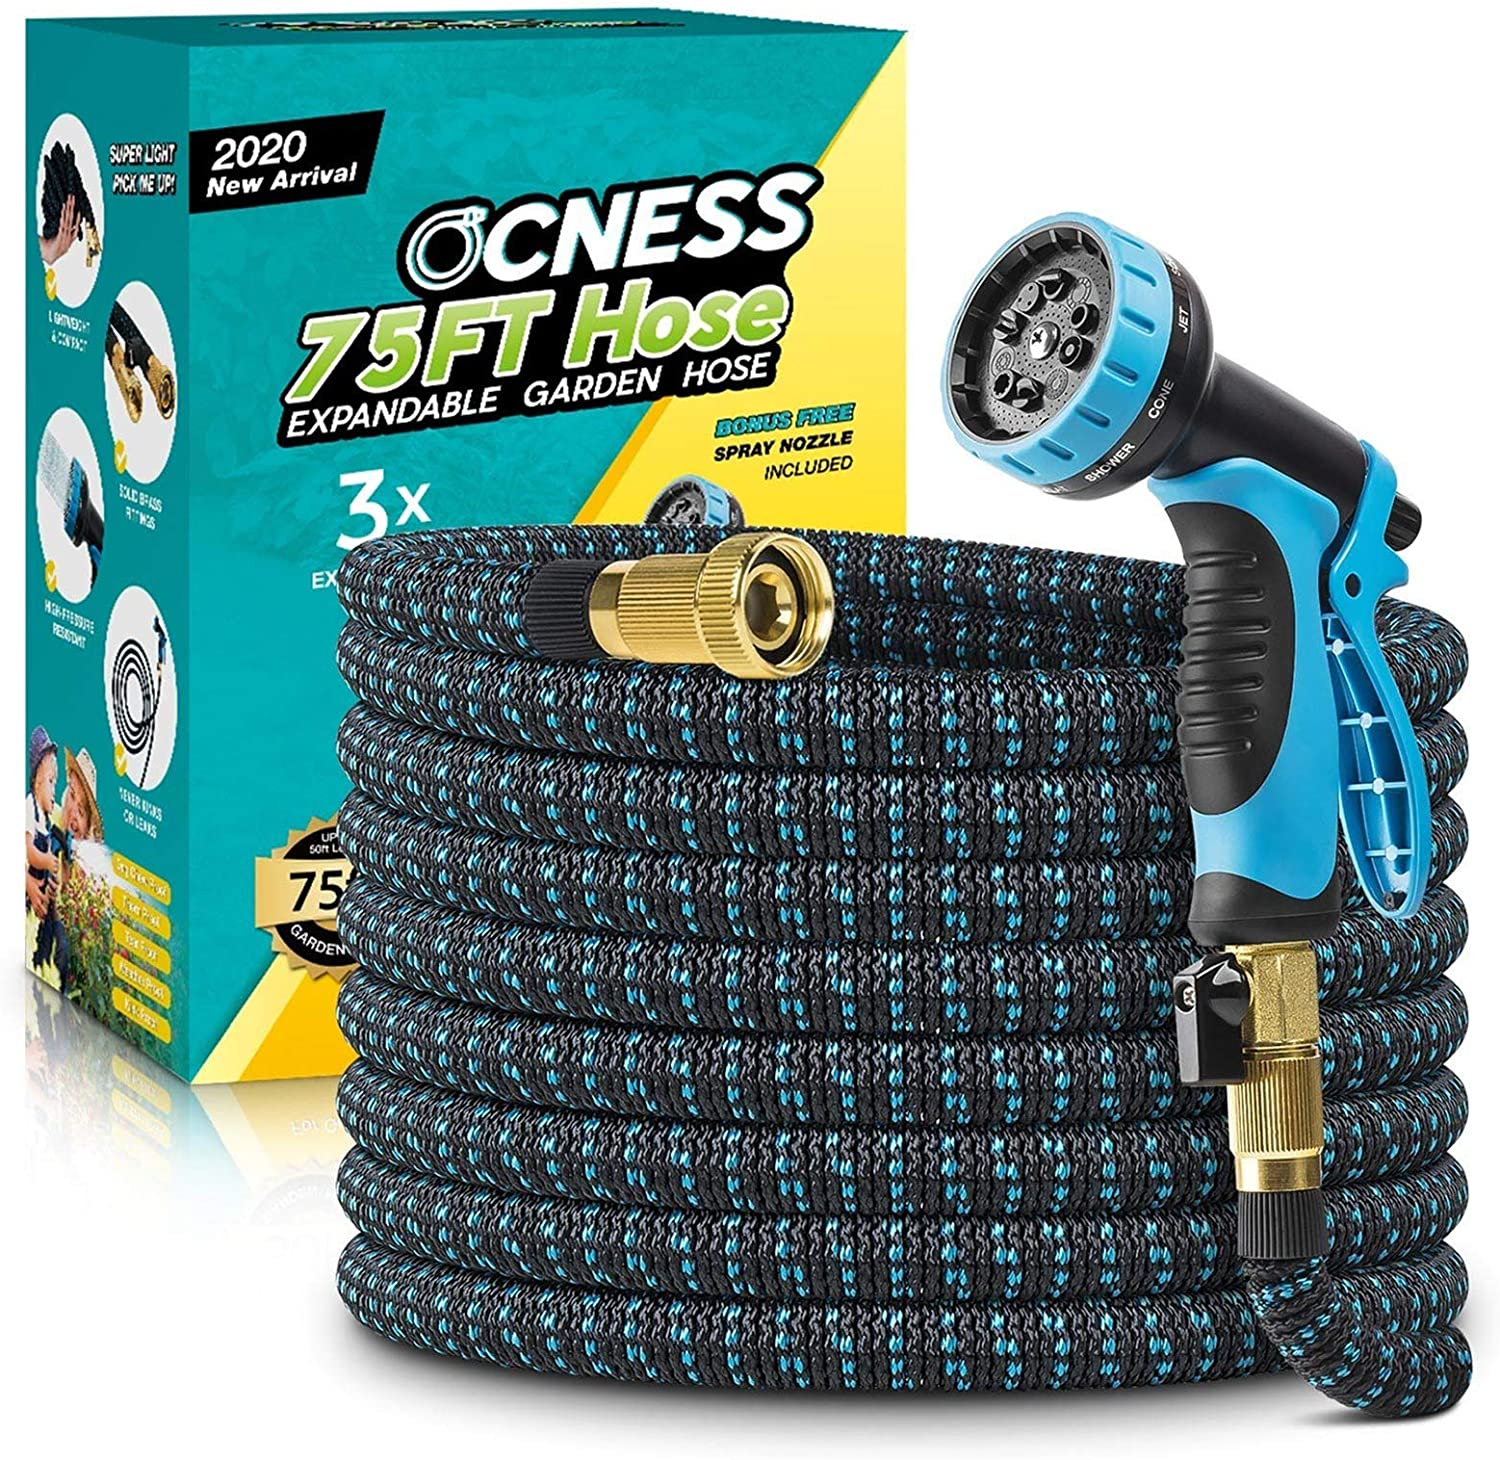 Expanding Hose for Lawn Car Pet Washing Durable Fabric 75ft Lightweight Flexible Water Hose with 9 Function Spray Nozzle Double Latex Core OCNESS Expandable Garden Hose 3//4 Solid Brass Fittings